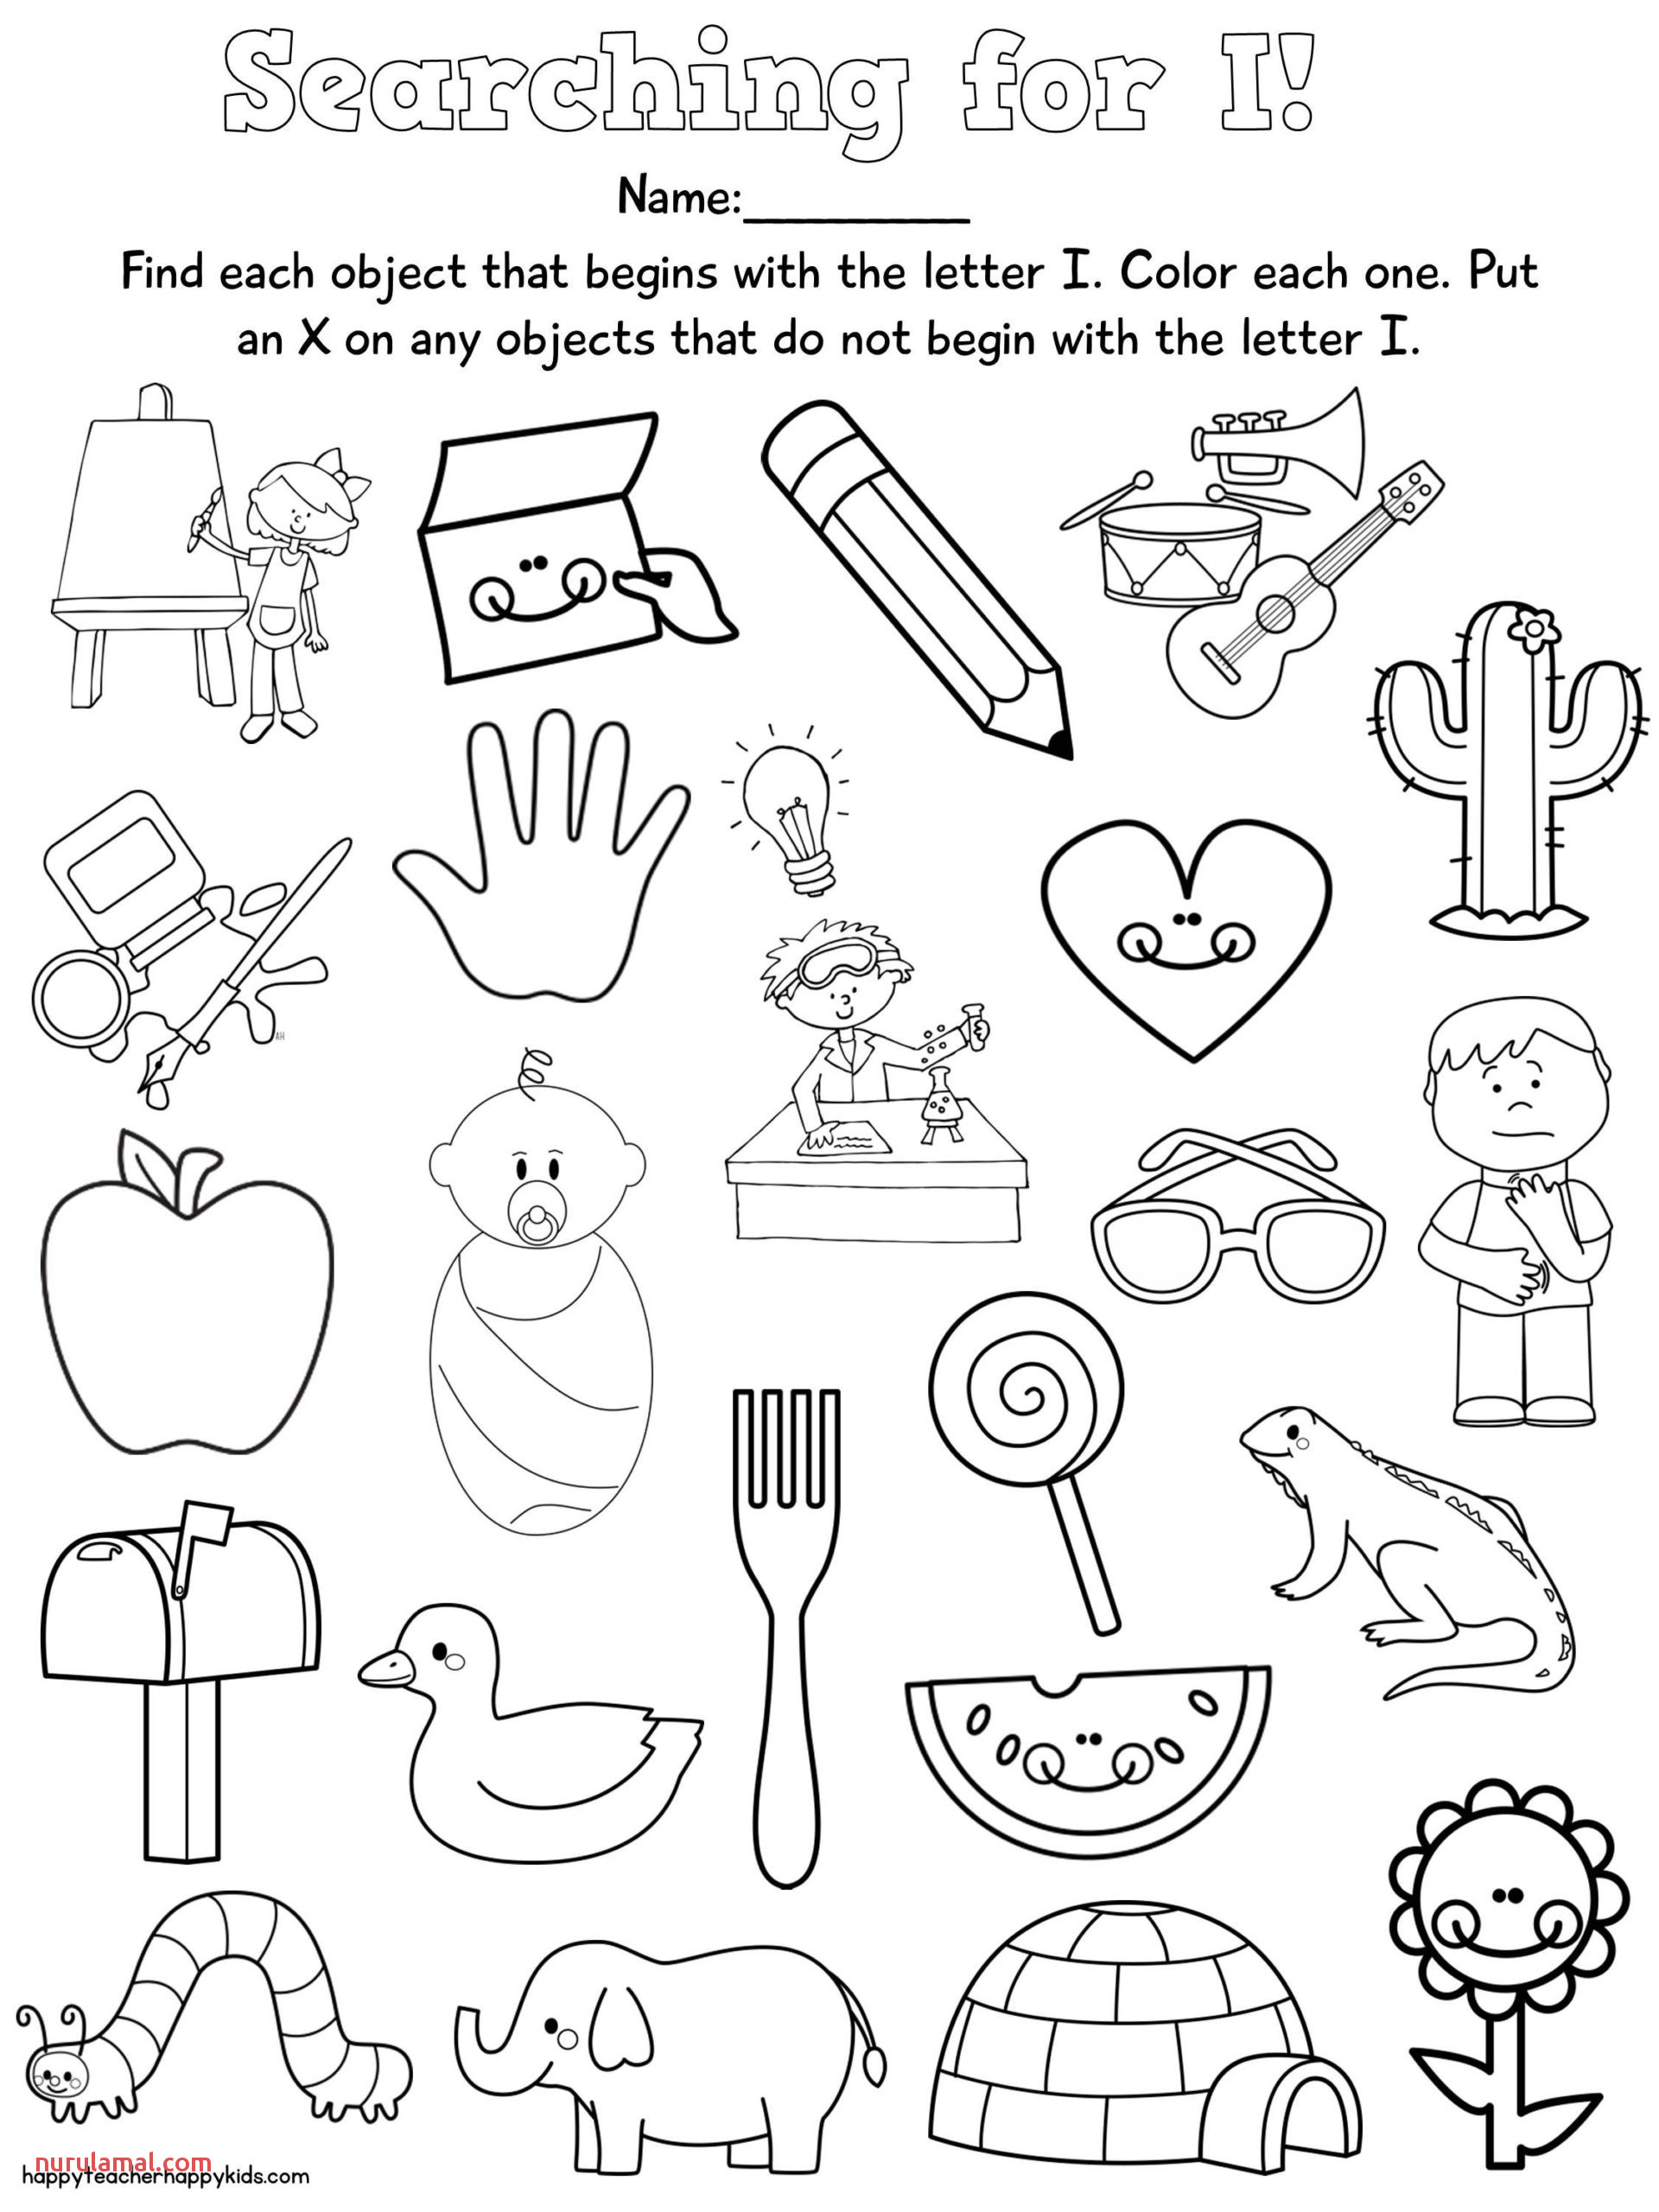 when worksheets for free digit by subtraction with regrouping single multiplication introduction to kids worksheet expressions seventh grade math book cute coloring year olds singular scaled